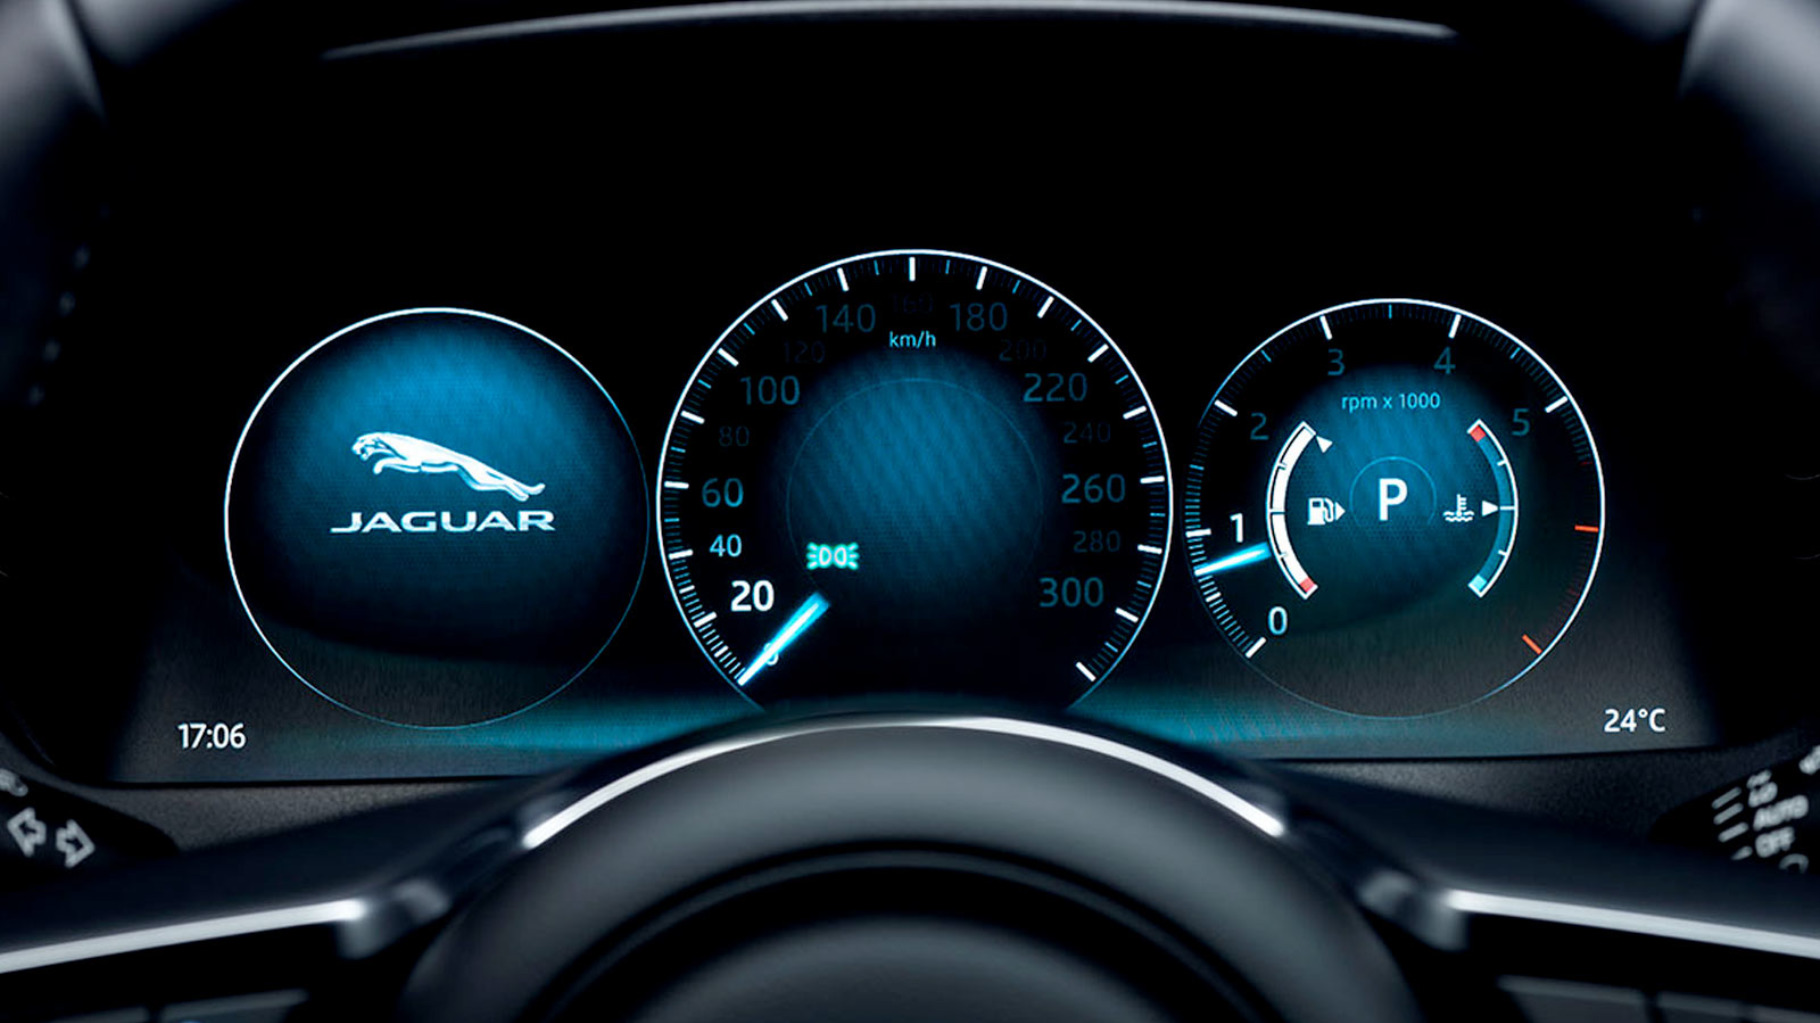 Jaguar F-Pace Dashboard.